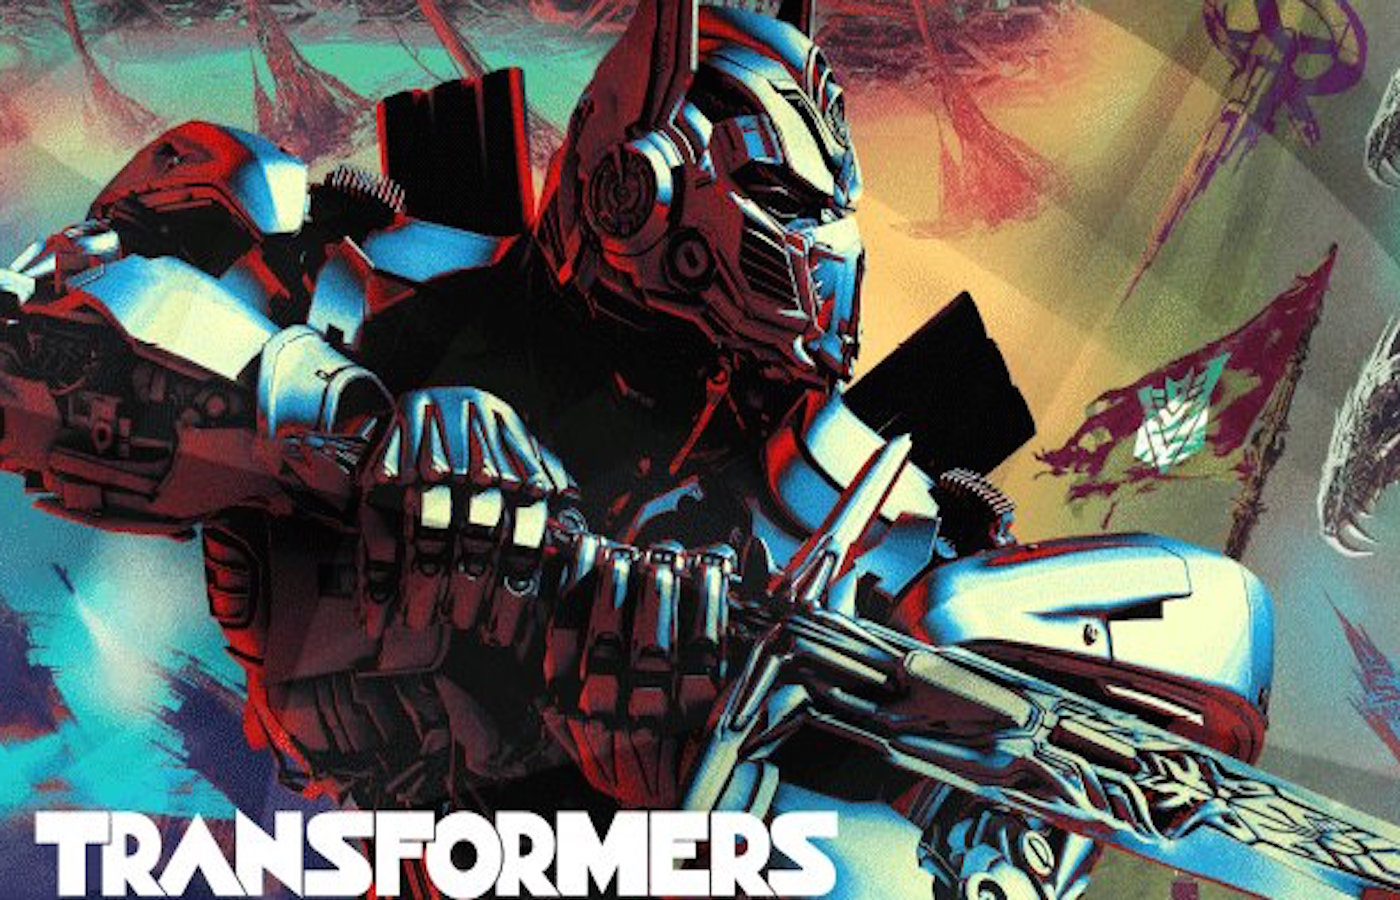 transformers-the-last-knight-poster-banner-2.jpg